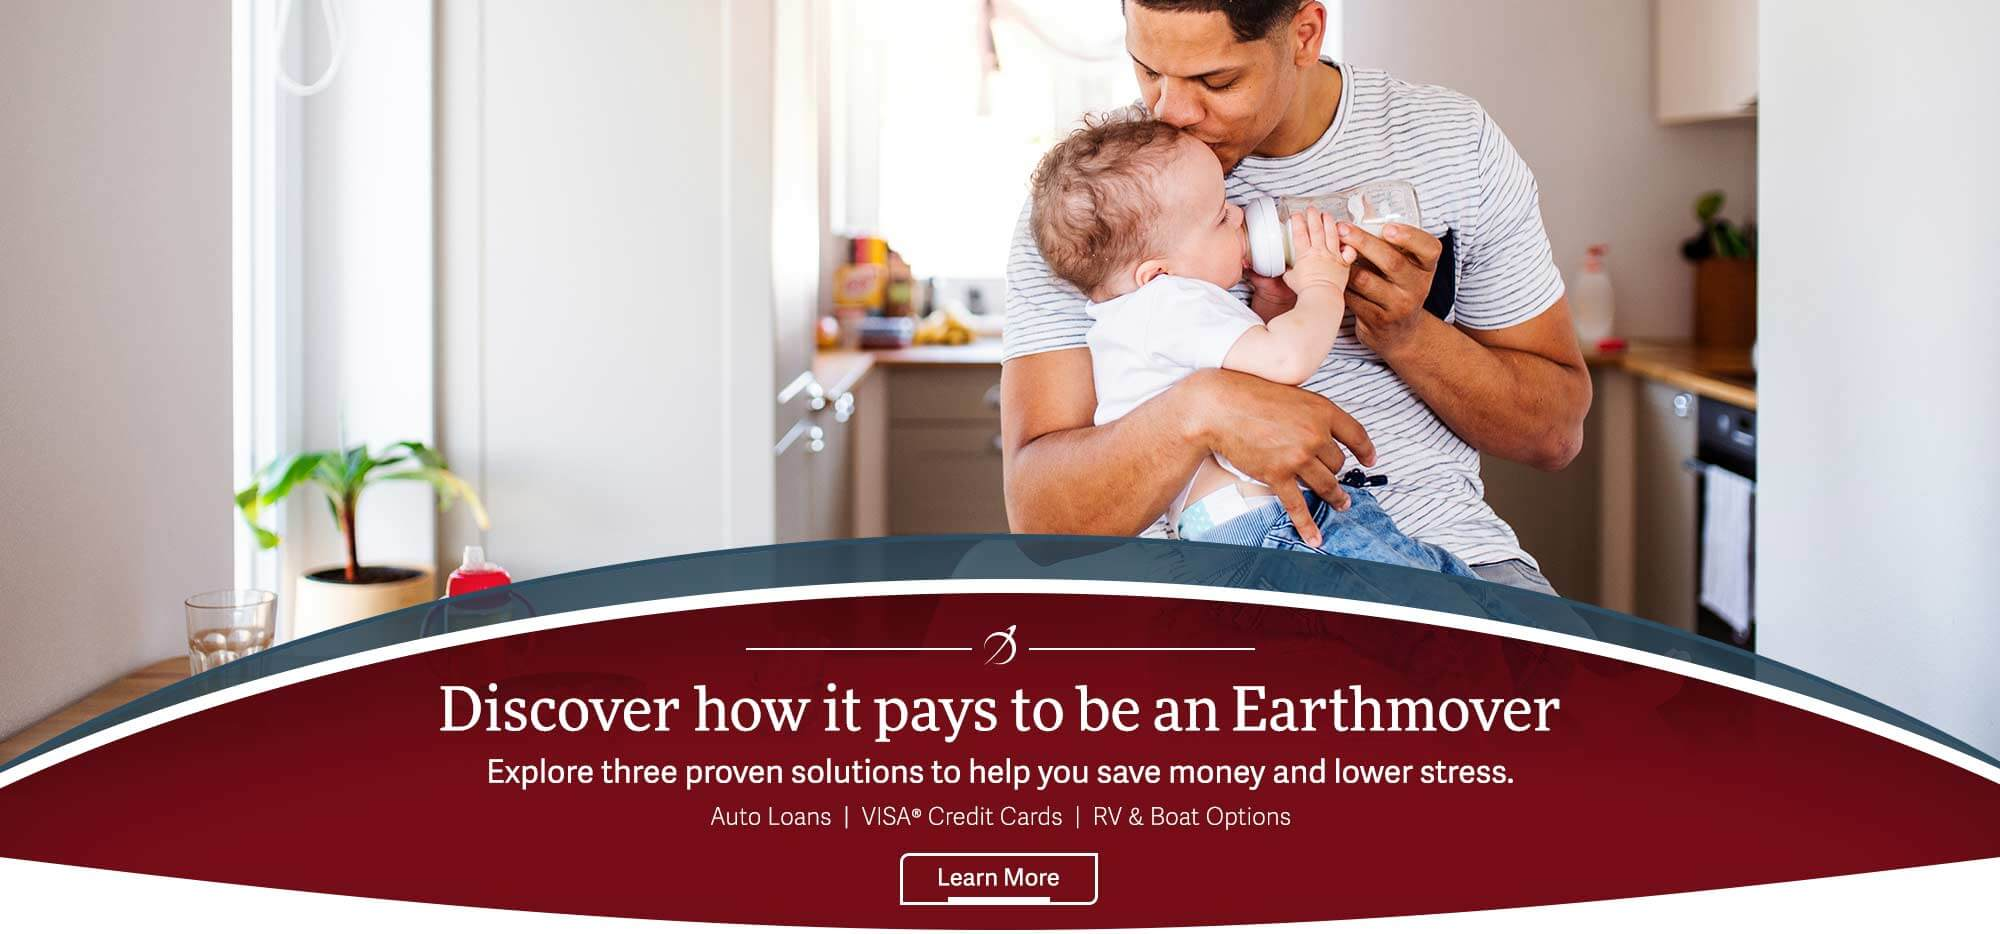 Discover how it pays to be an Earthmover. Explore three proven solutions to help you save money and lower stress. Auto Loans, VISA Credit Cards, RV & Boat Options. Learn more.